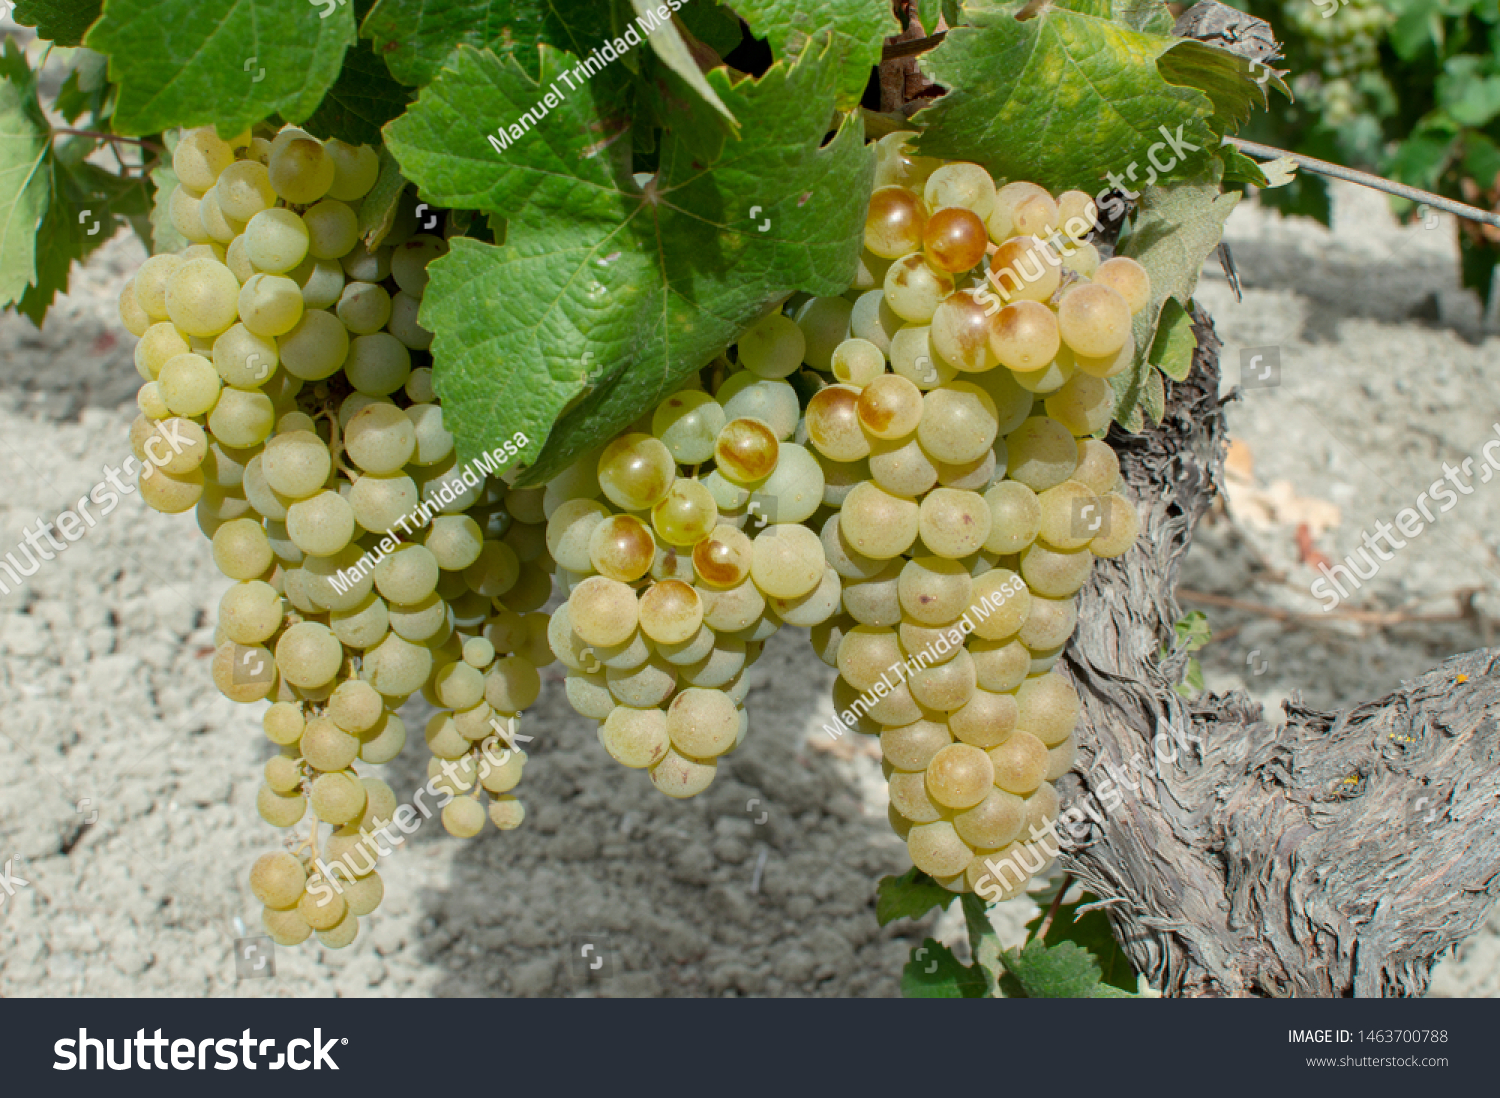 White grape harvest to make wine in the area of Jerez de la Frontera and Sanlucar de Barrameda, Spain